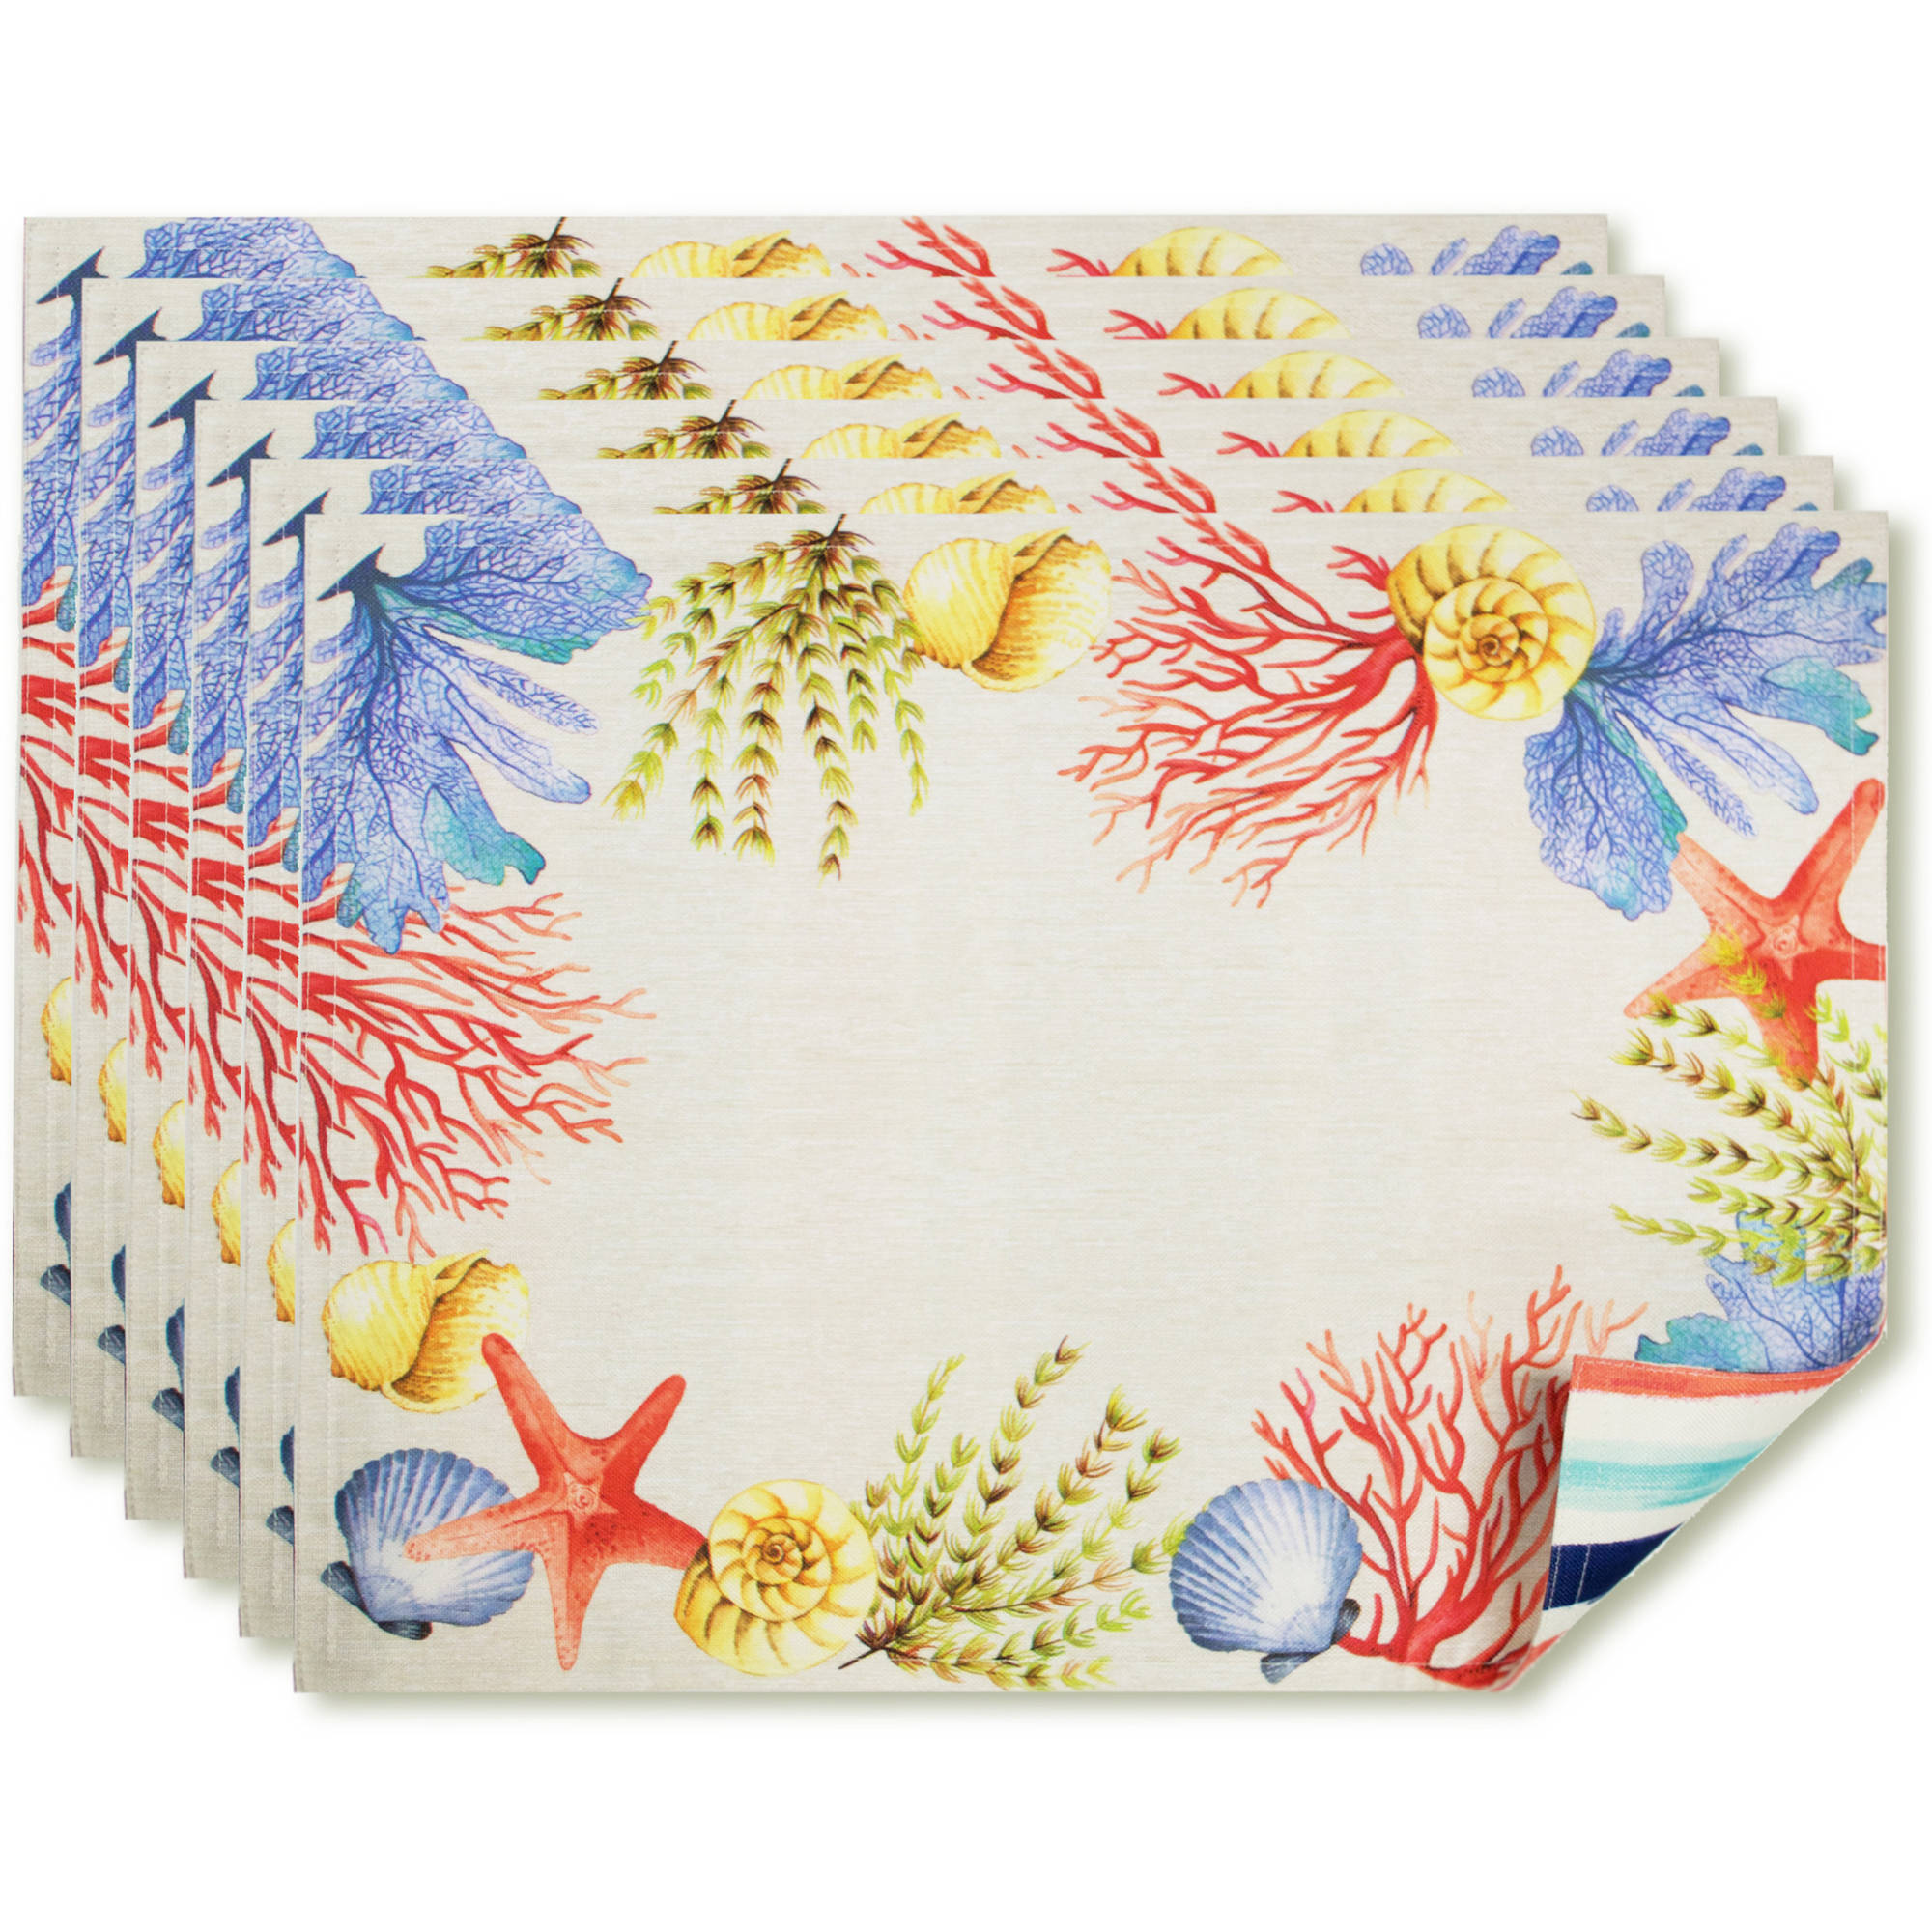 Better Homes and Gardens Reversible Stripe Placemat, 6pk by